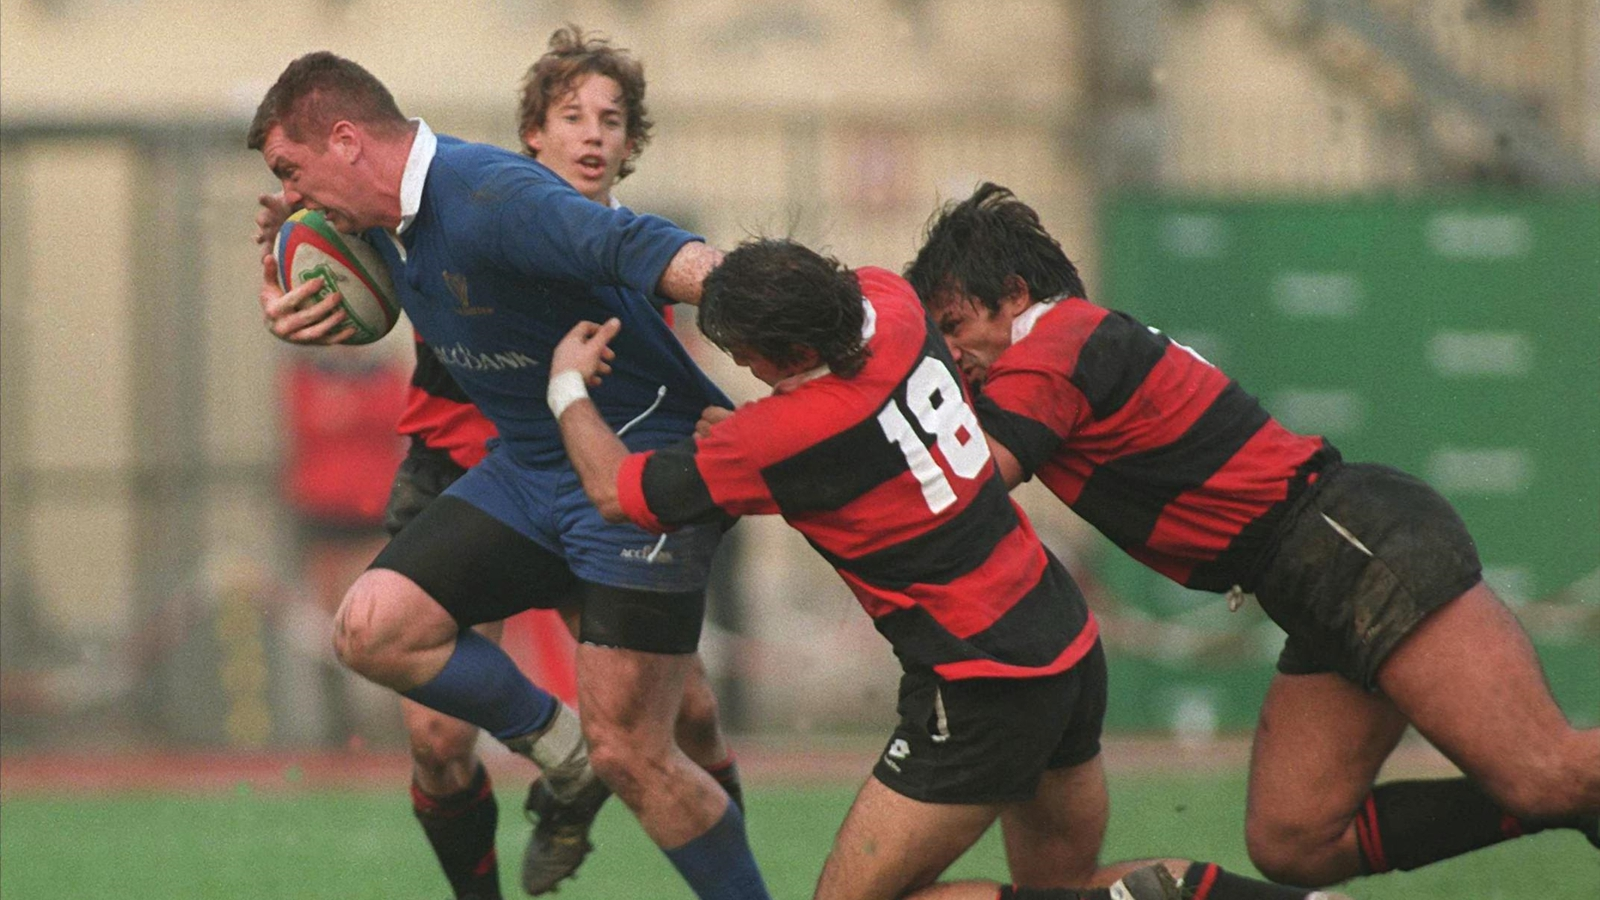 Image - Costello in action for Leinster against Milan in the 1996 Heineken Cup.